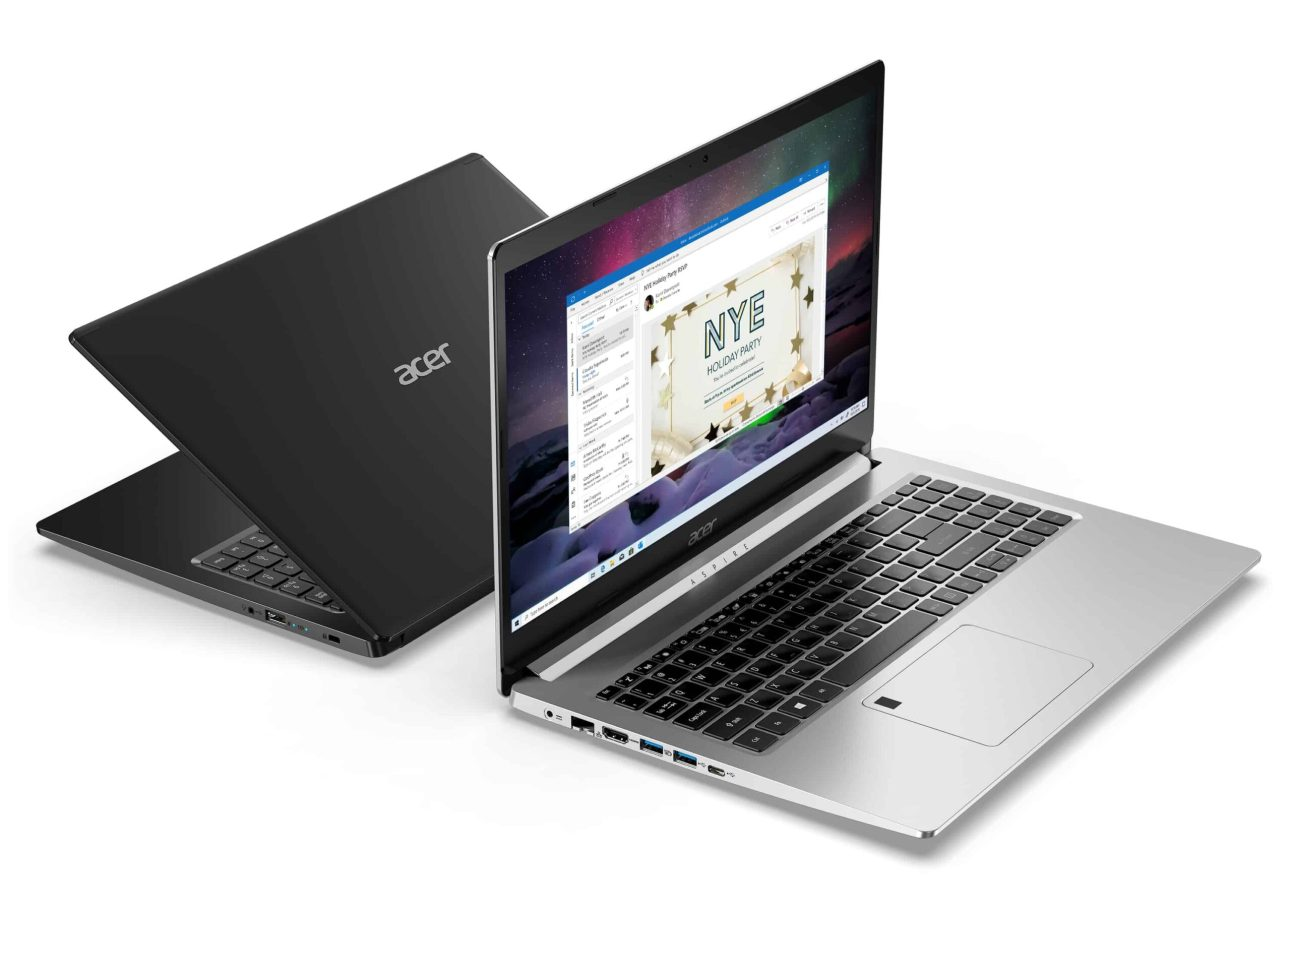 Acer Announced New Aspire 5 and Aspire 7 Laptops Powered by AMD Ryzen 5000 Series The Powerful balance in Slim Design